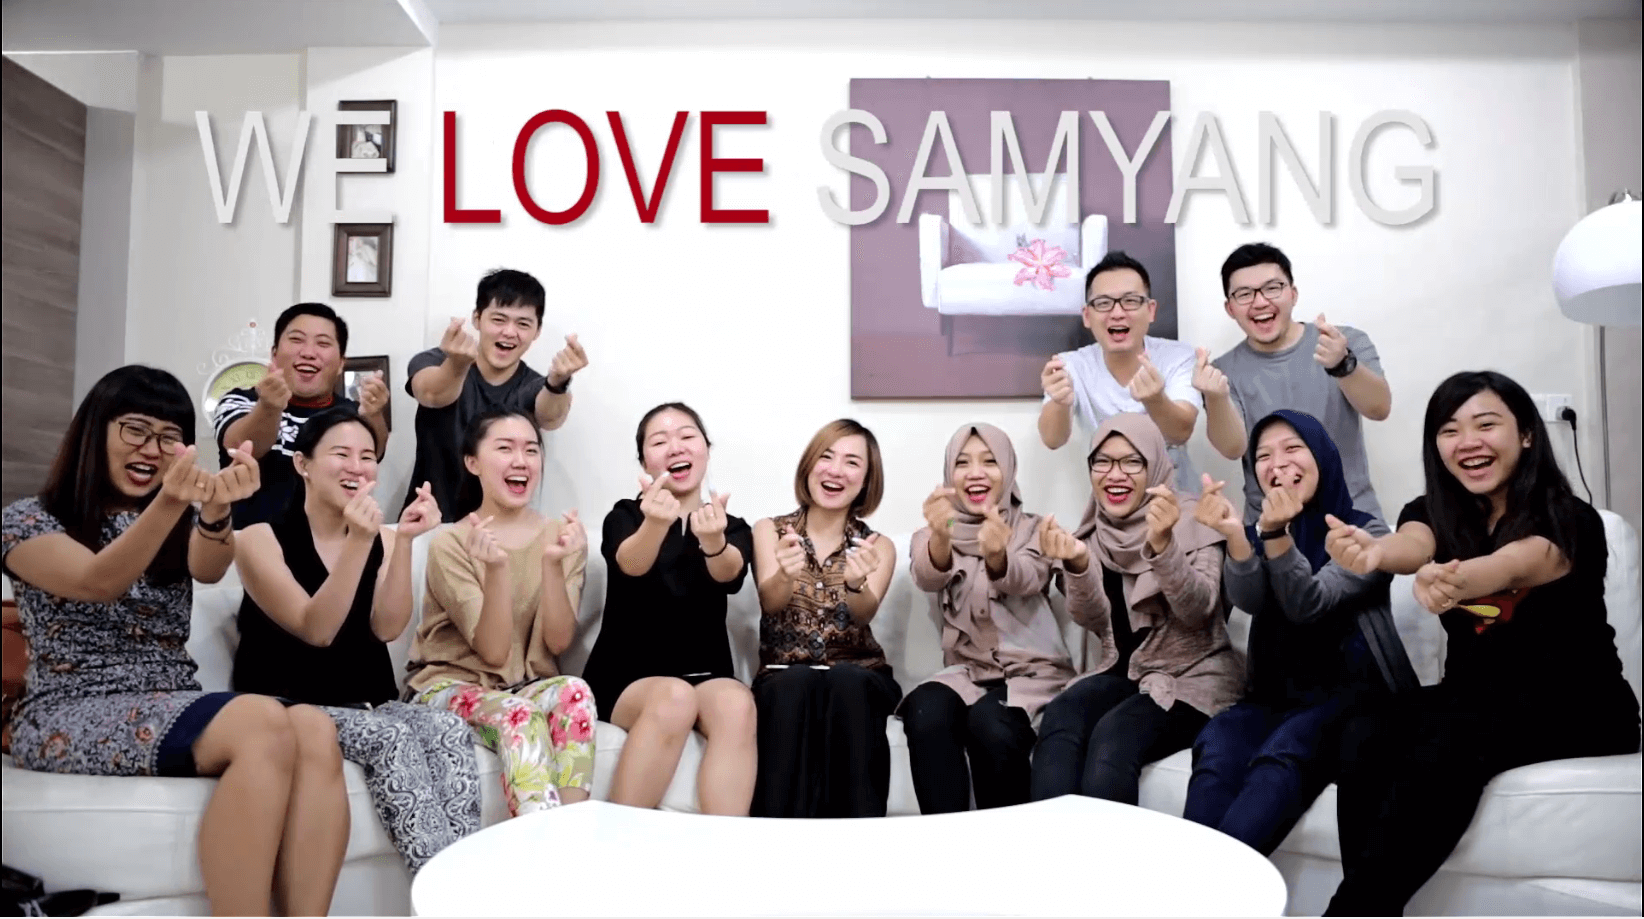 SAMYANG ADDICTS